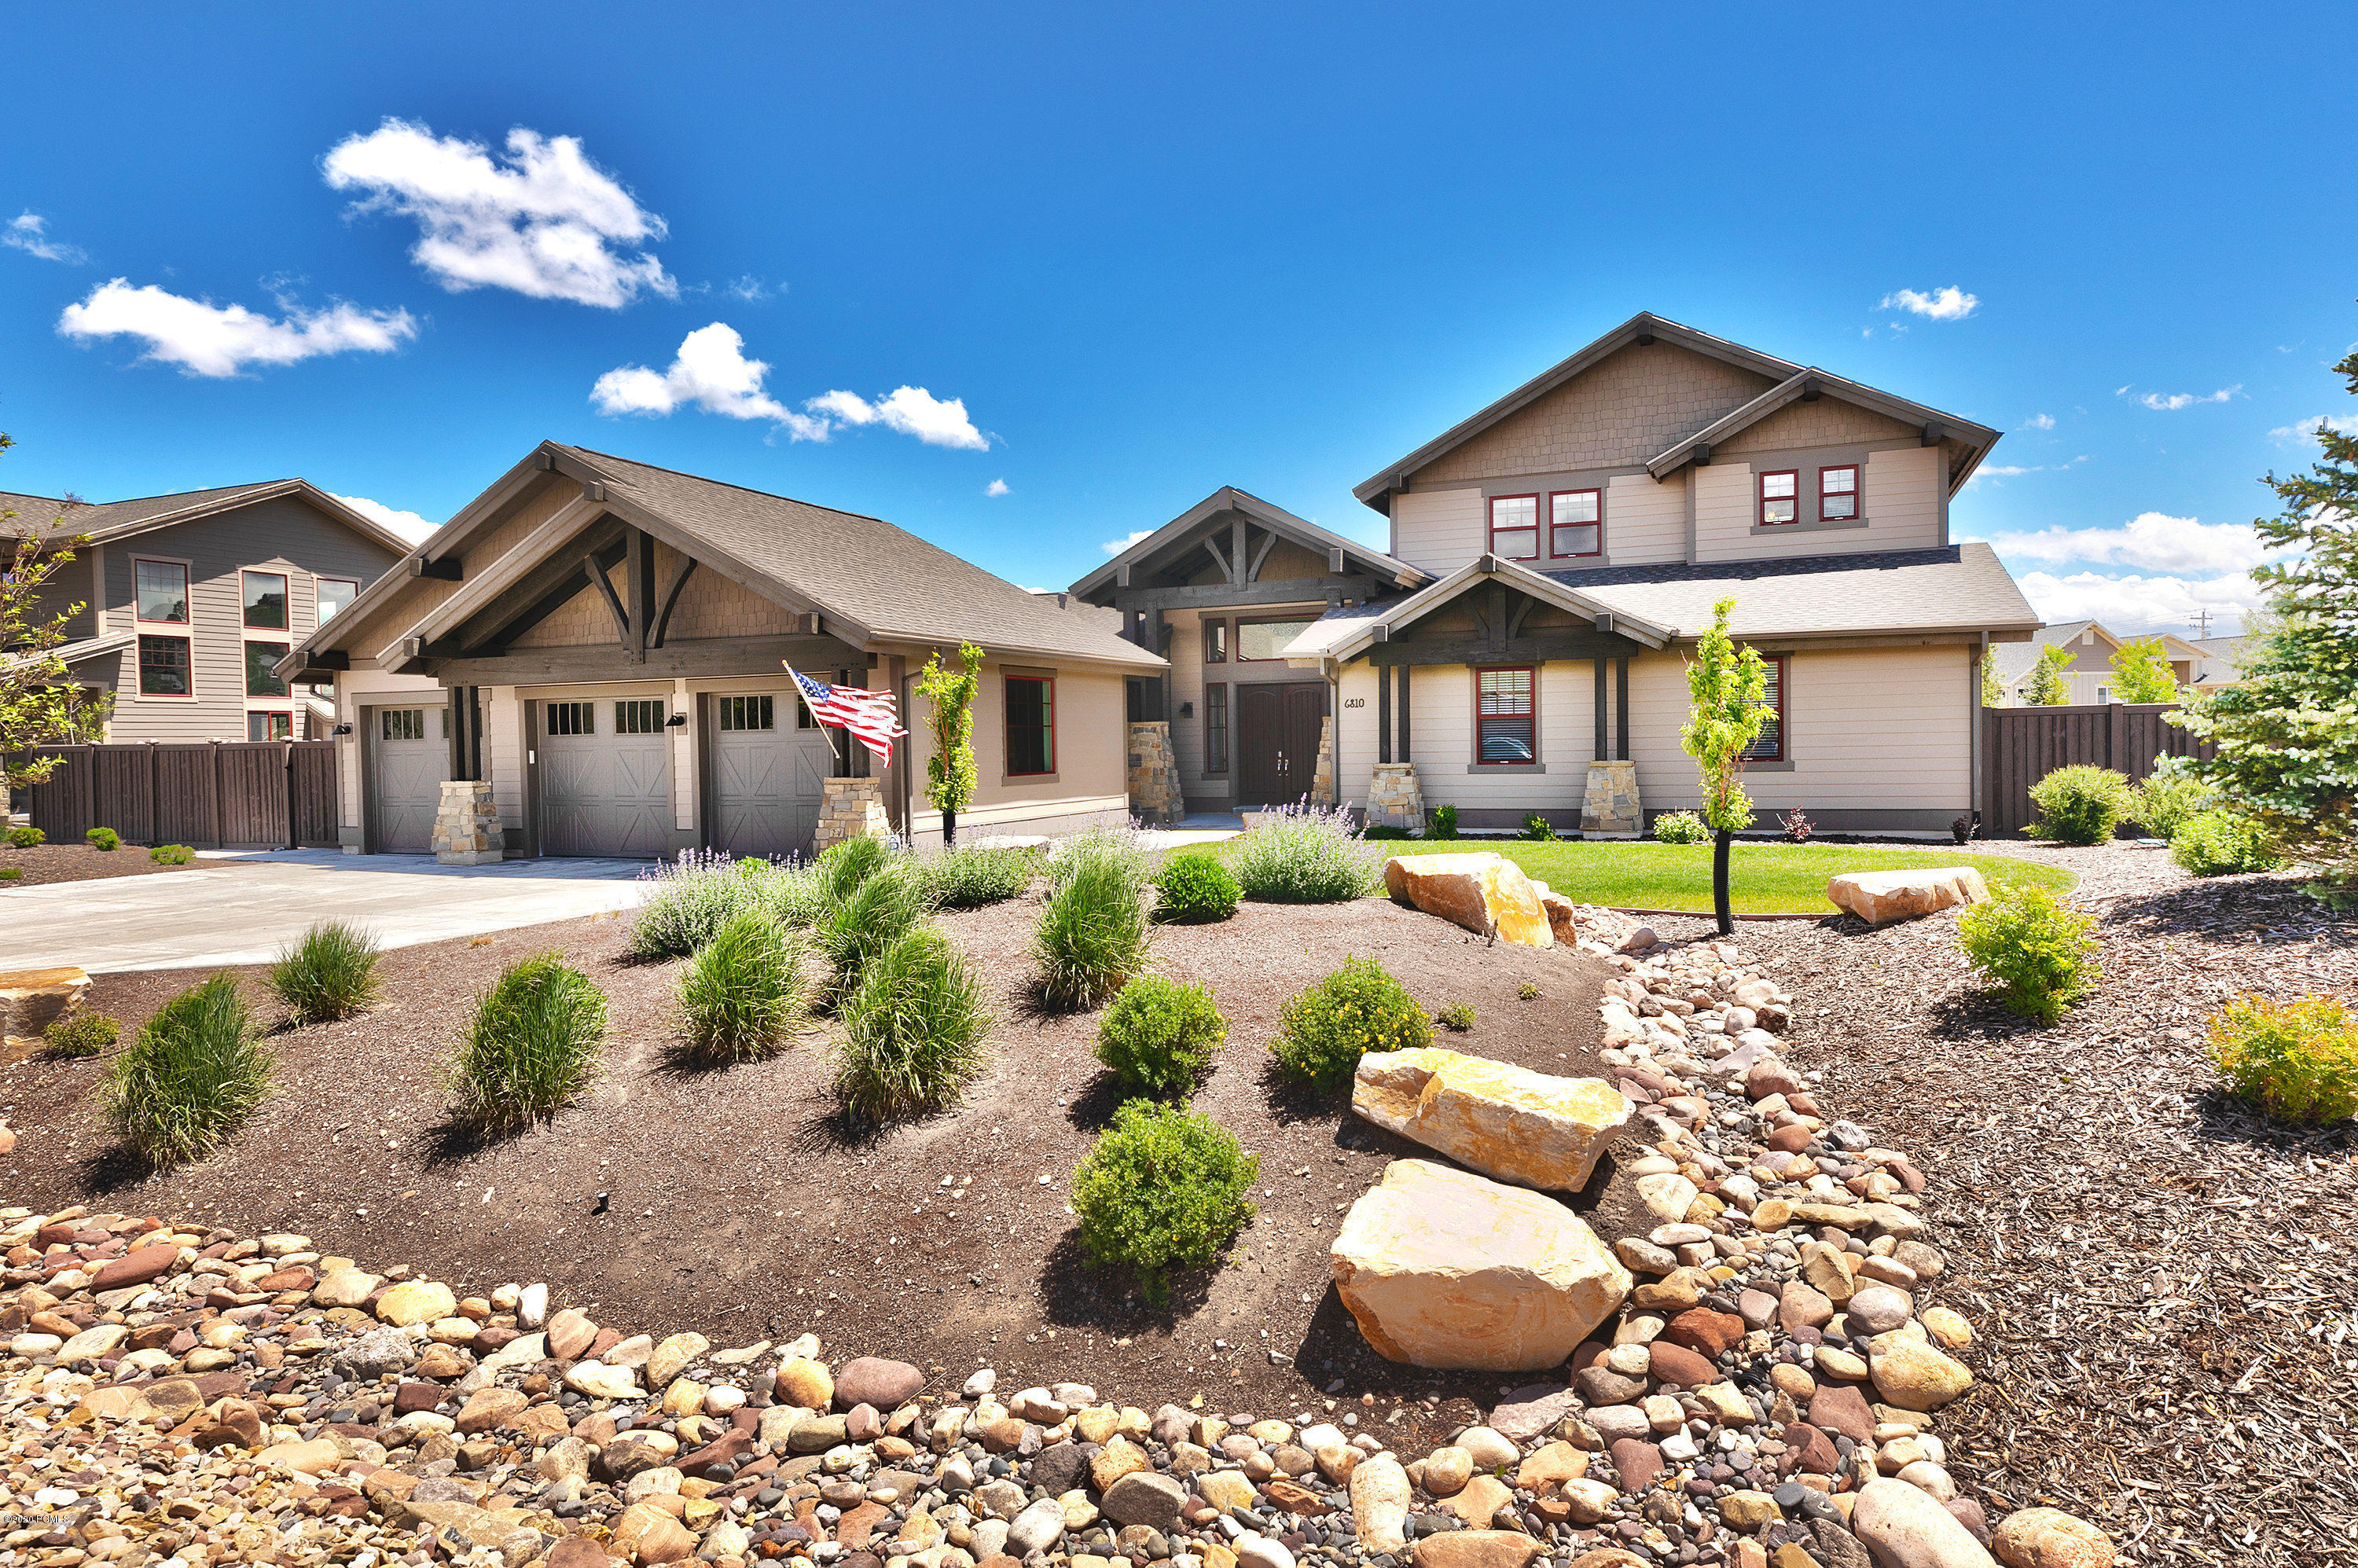 6810 Greenfield Drive, Park City, Utah 84098, 4 Bedrooms Bedrooms, ,4 BathroomsBathrooms,Single Family,For Sale,Greenfield,20190109112430415765000000